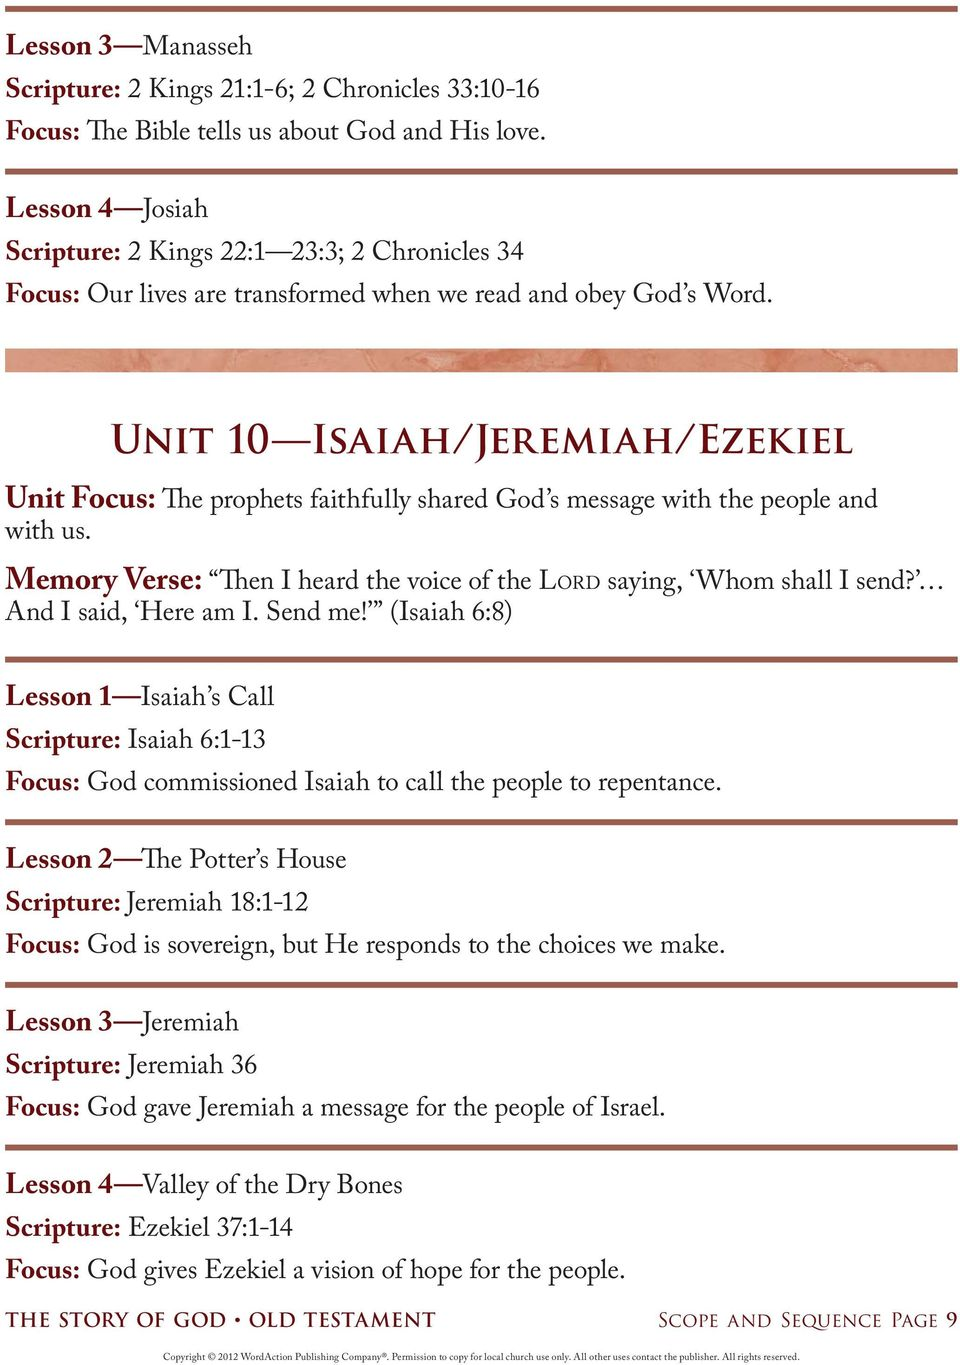 Unit 10 Isaiah/Jeremiah/Ezekiel Unit Focus: The prophets faithfully shared God s message with the people and with us. Memory Verse: Then I heard the voice of the LORD saying, Whom shall I send?